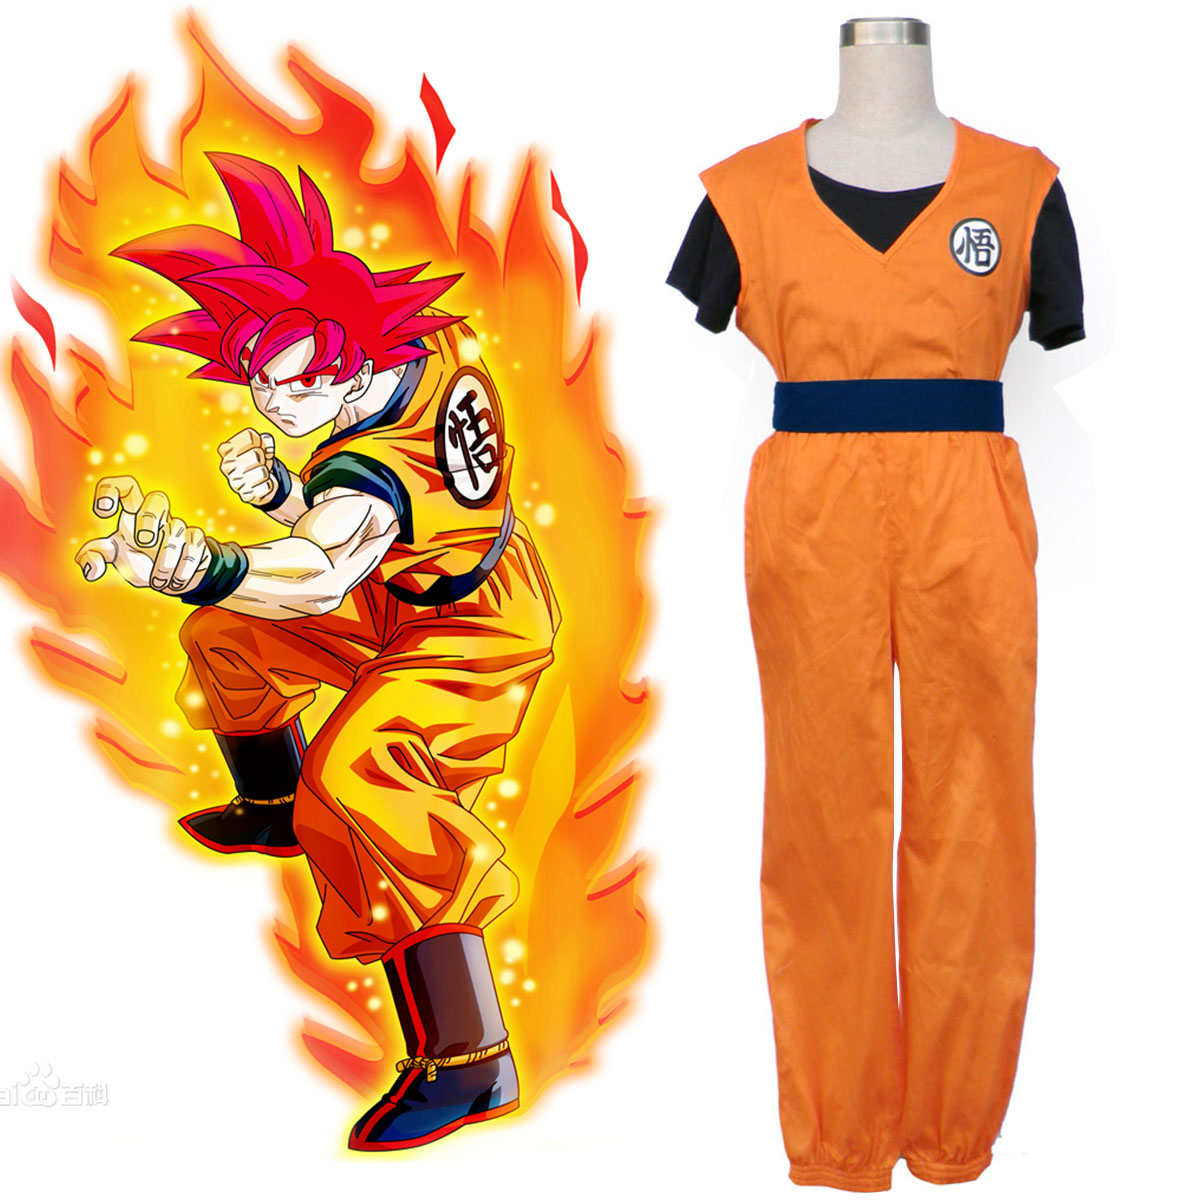 Dragon Ball Son Goku 2 Anime Cosplay Costumes Outfit